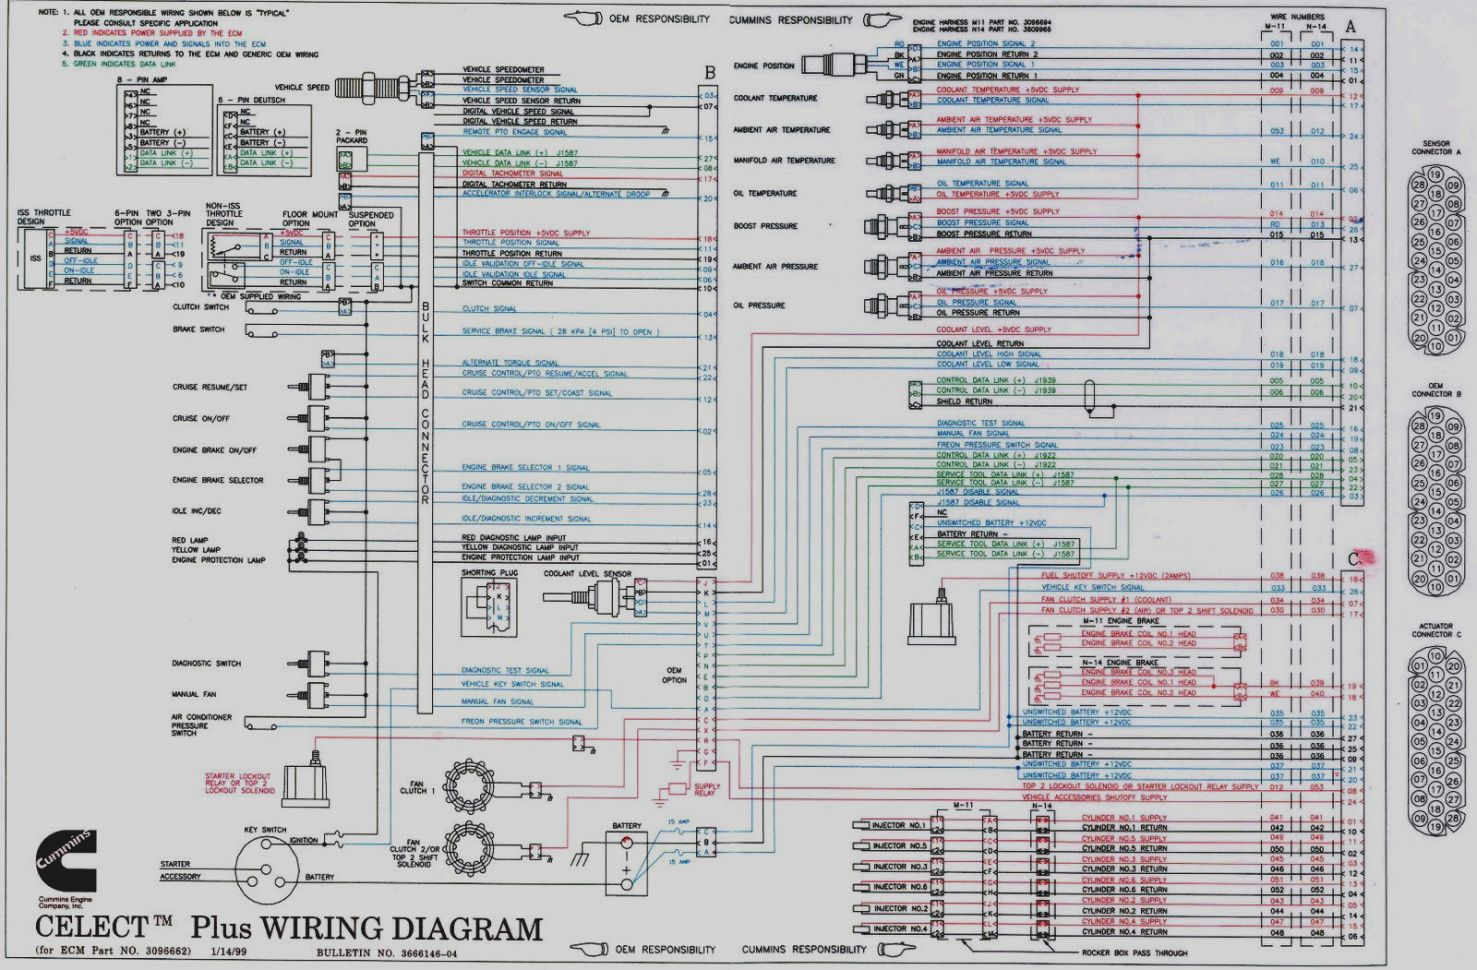 Awesome Cummins N14 Celect Plus Wiring Diagram Freightliner Columbia Truck Diagrams Throughout